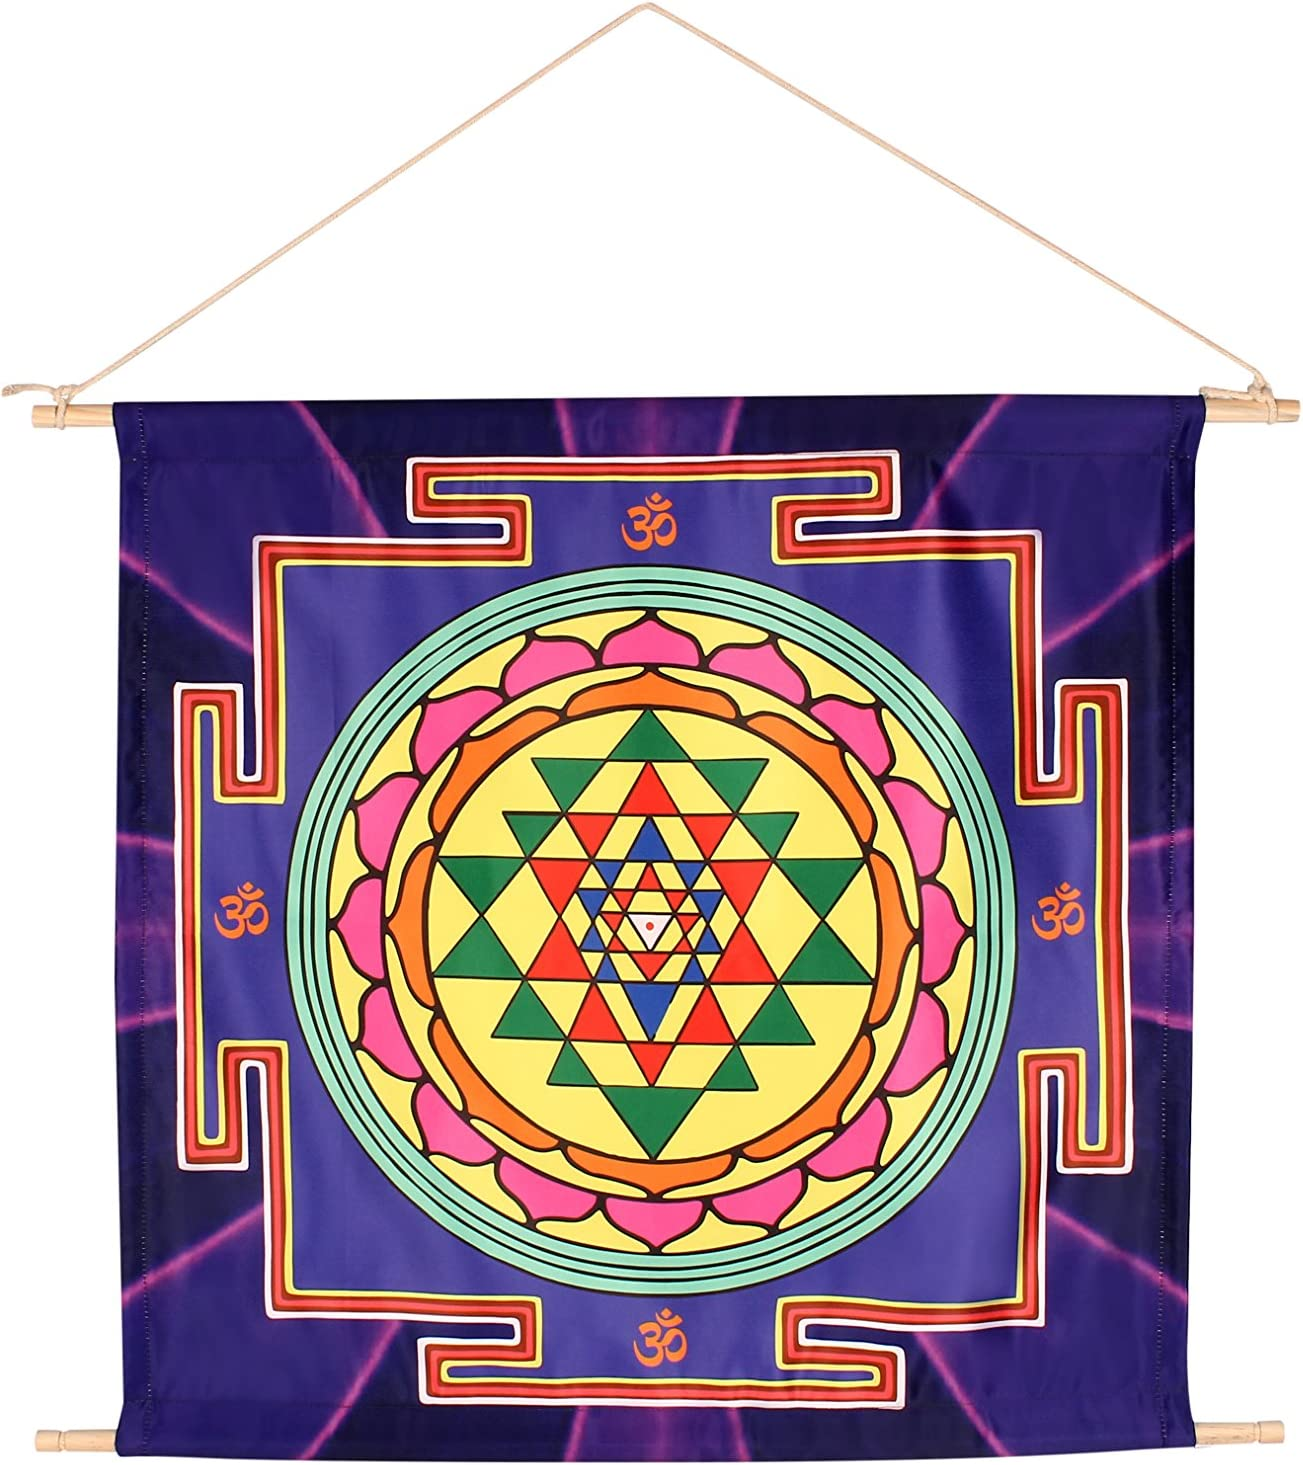 "HappyGenie 21"" X 22"" Sri Yantra Mandala Meditation Banner -Sacred Geometry Wall Decor for Abundance, Peace and Prosperity (Made in Accordance to Ancient Scriptures) - Accurate and Energized"